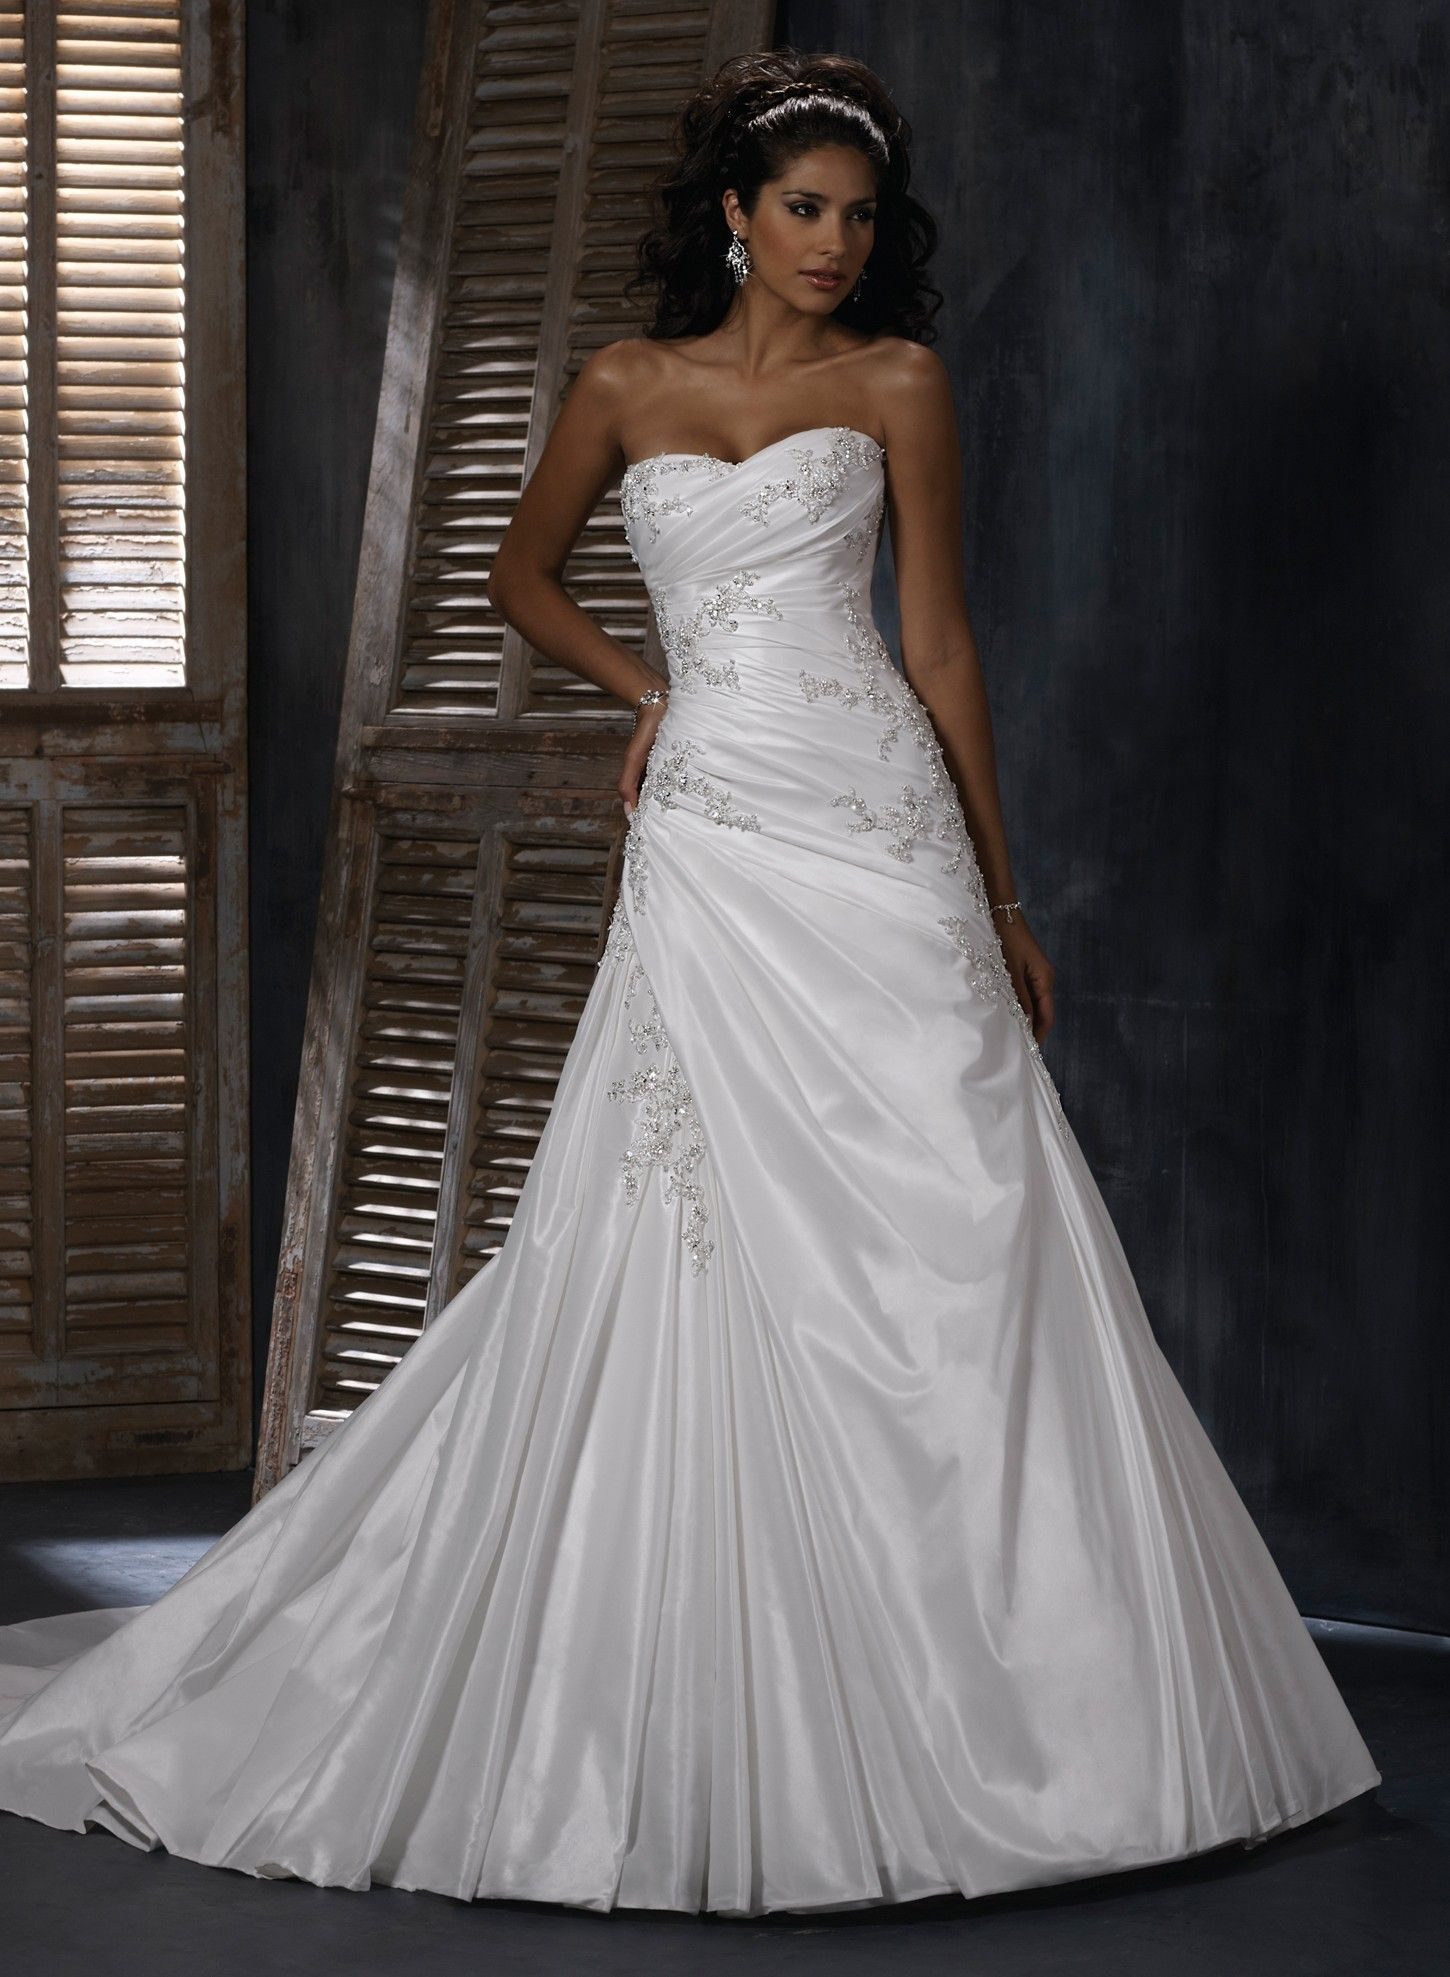 bordeaux taffeta soft sweetheart neckline a line wedding dress